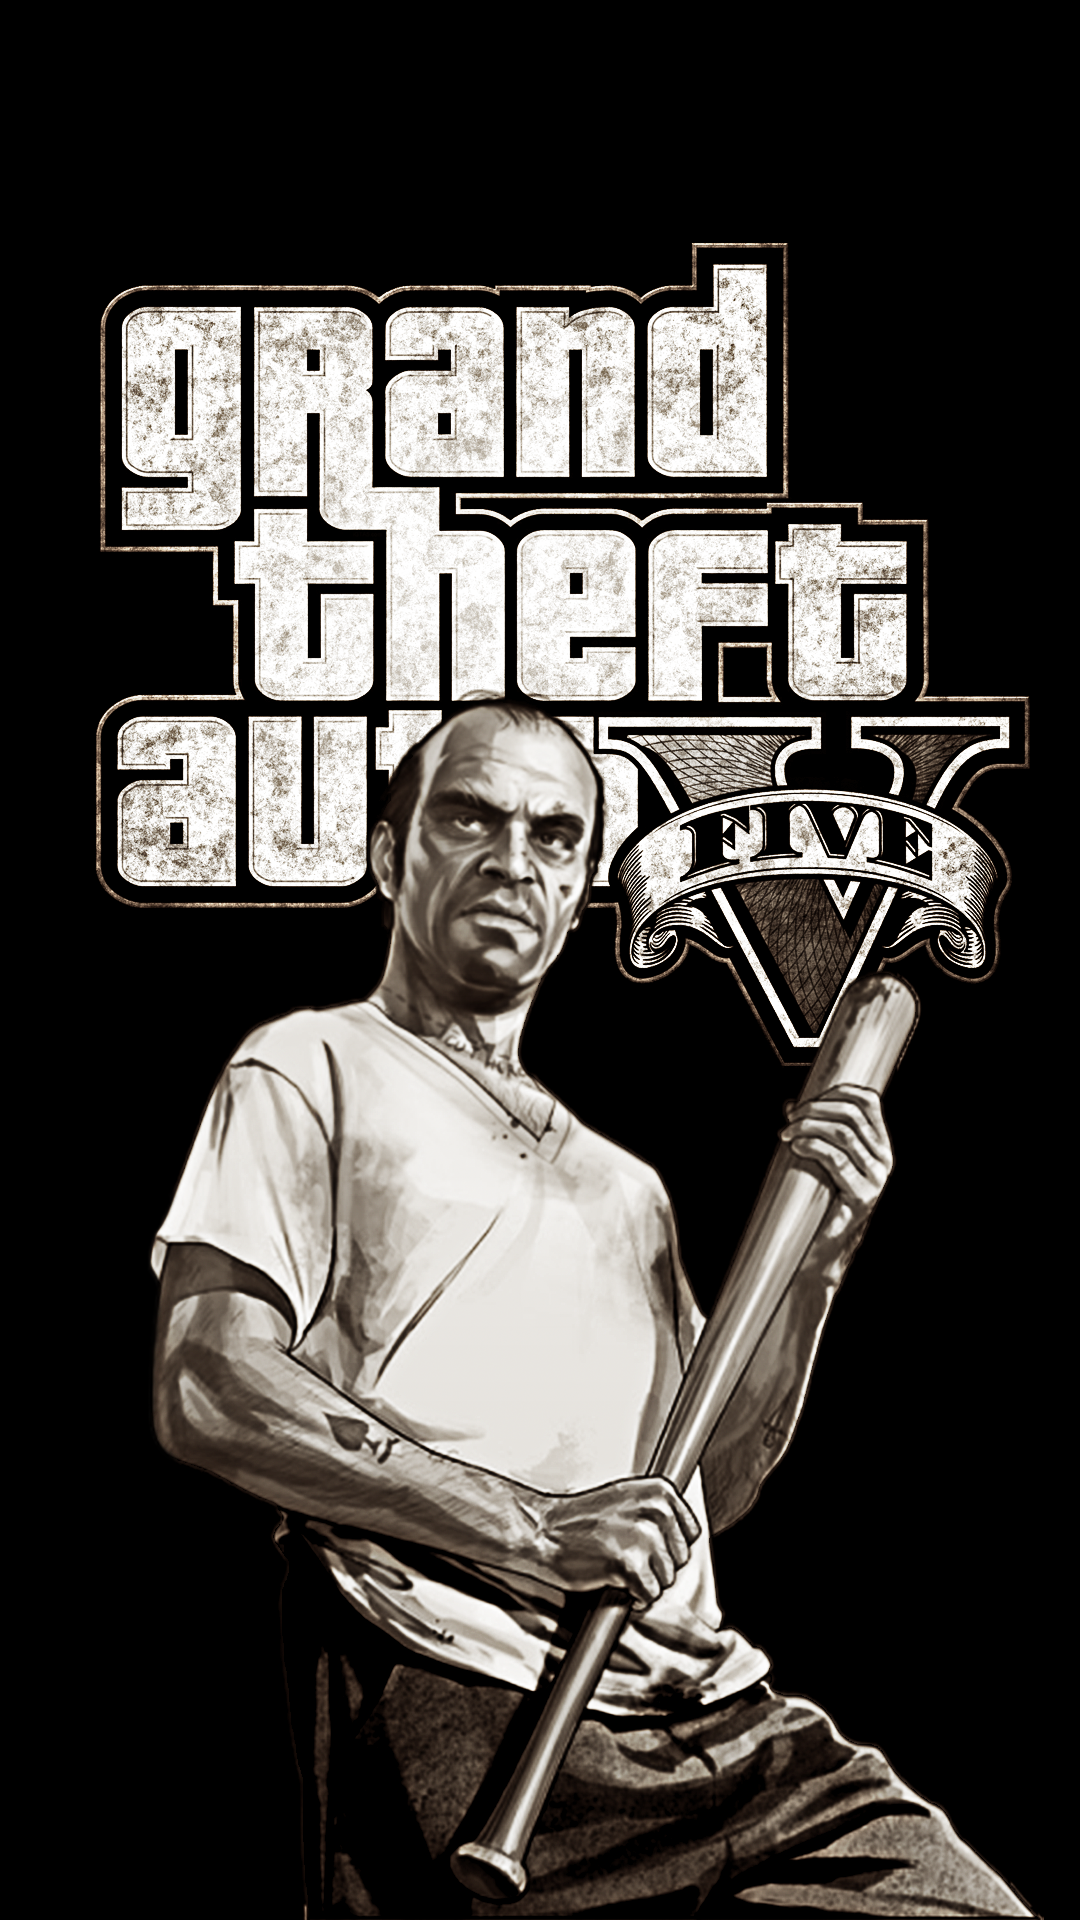 download our hd trevor gta 5 wallpaper for android phones 0552